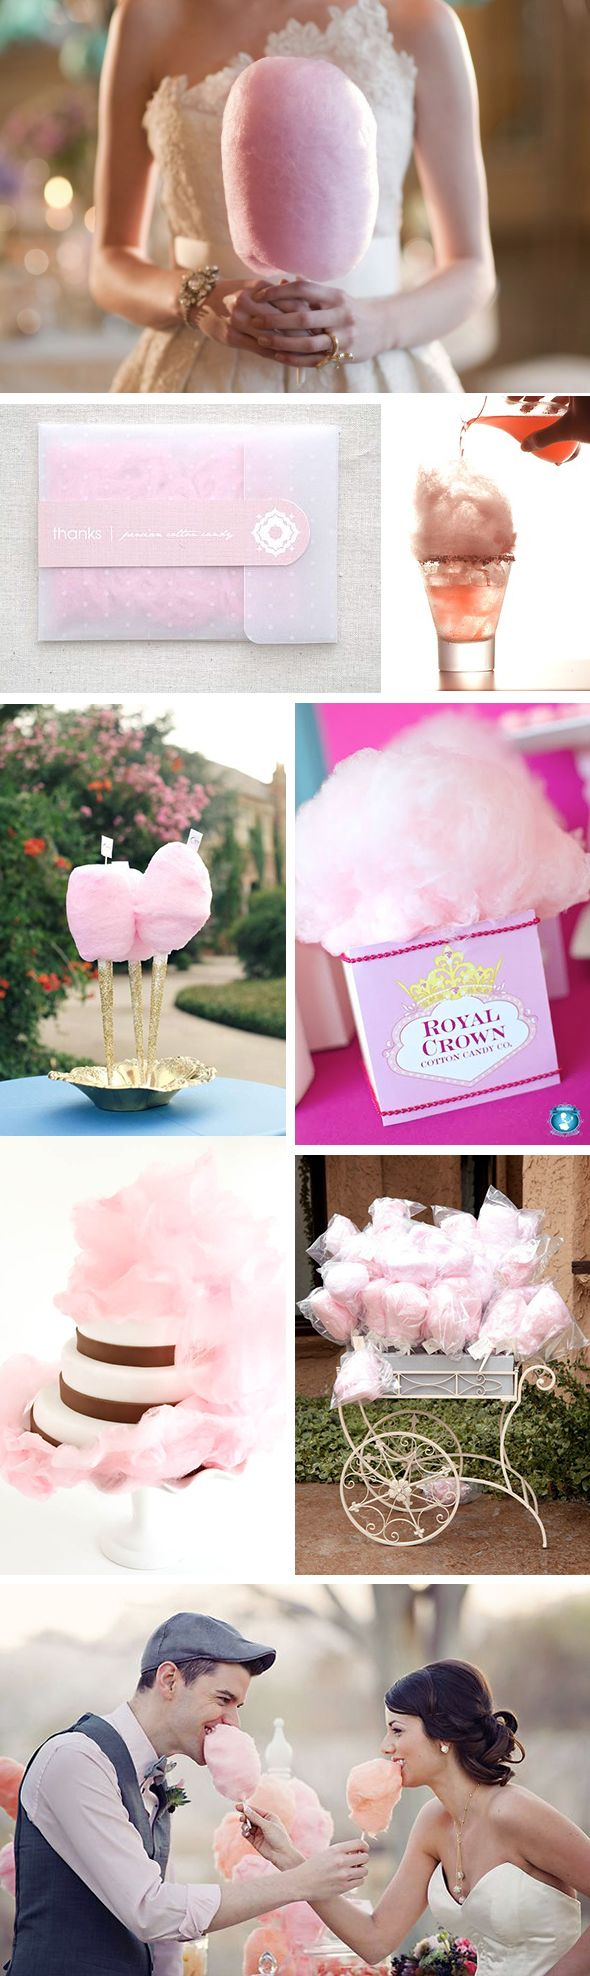 Cotton Candy Wedding Ideas | The Bridal Bar